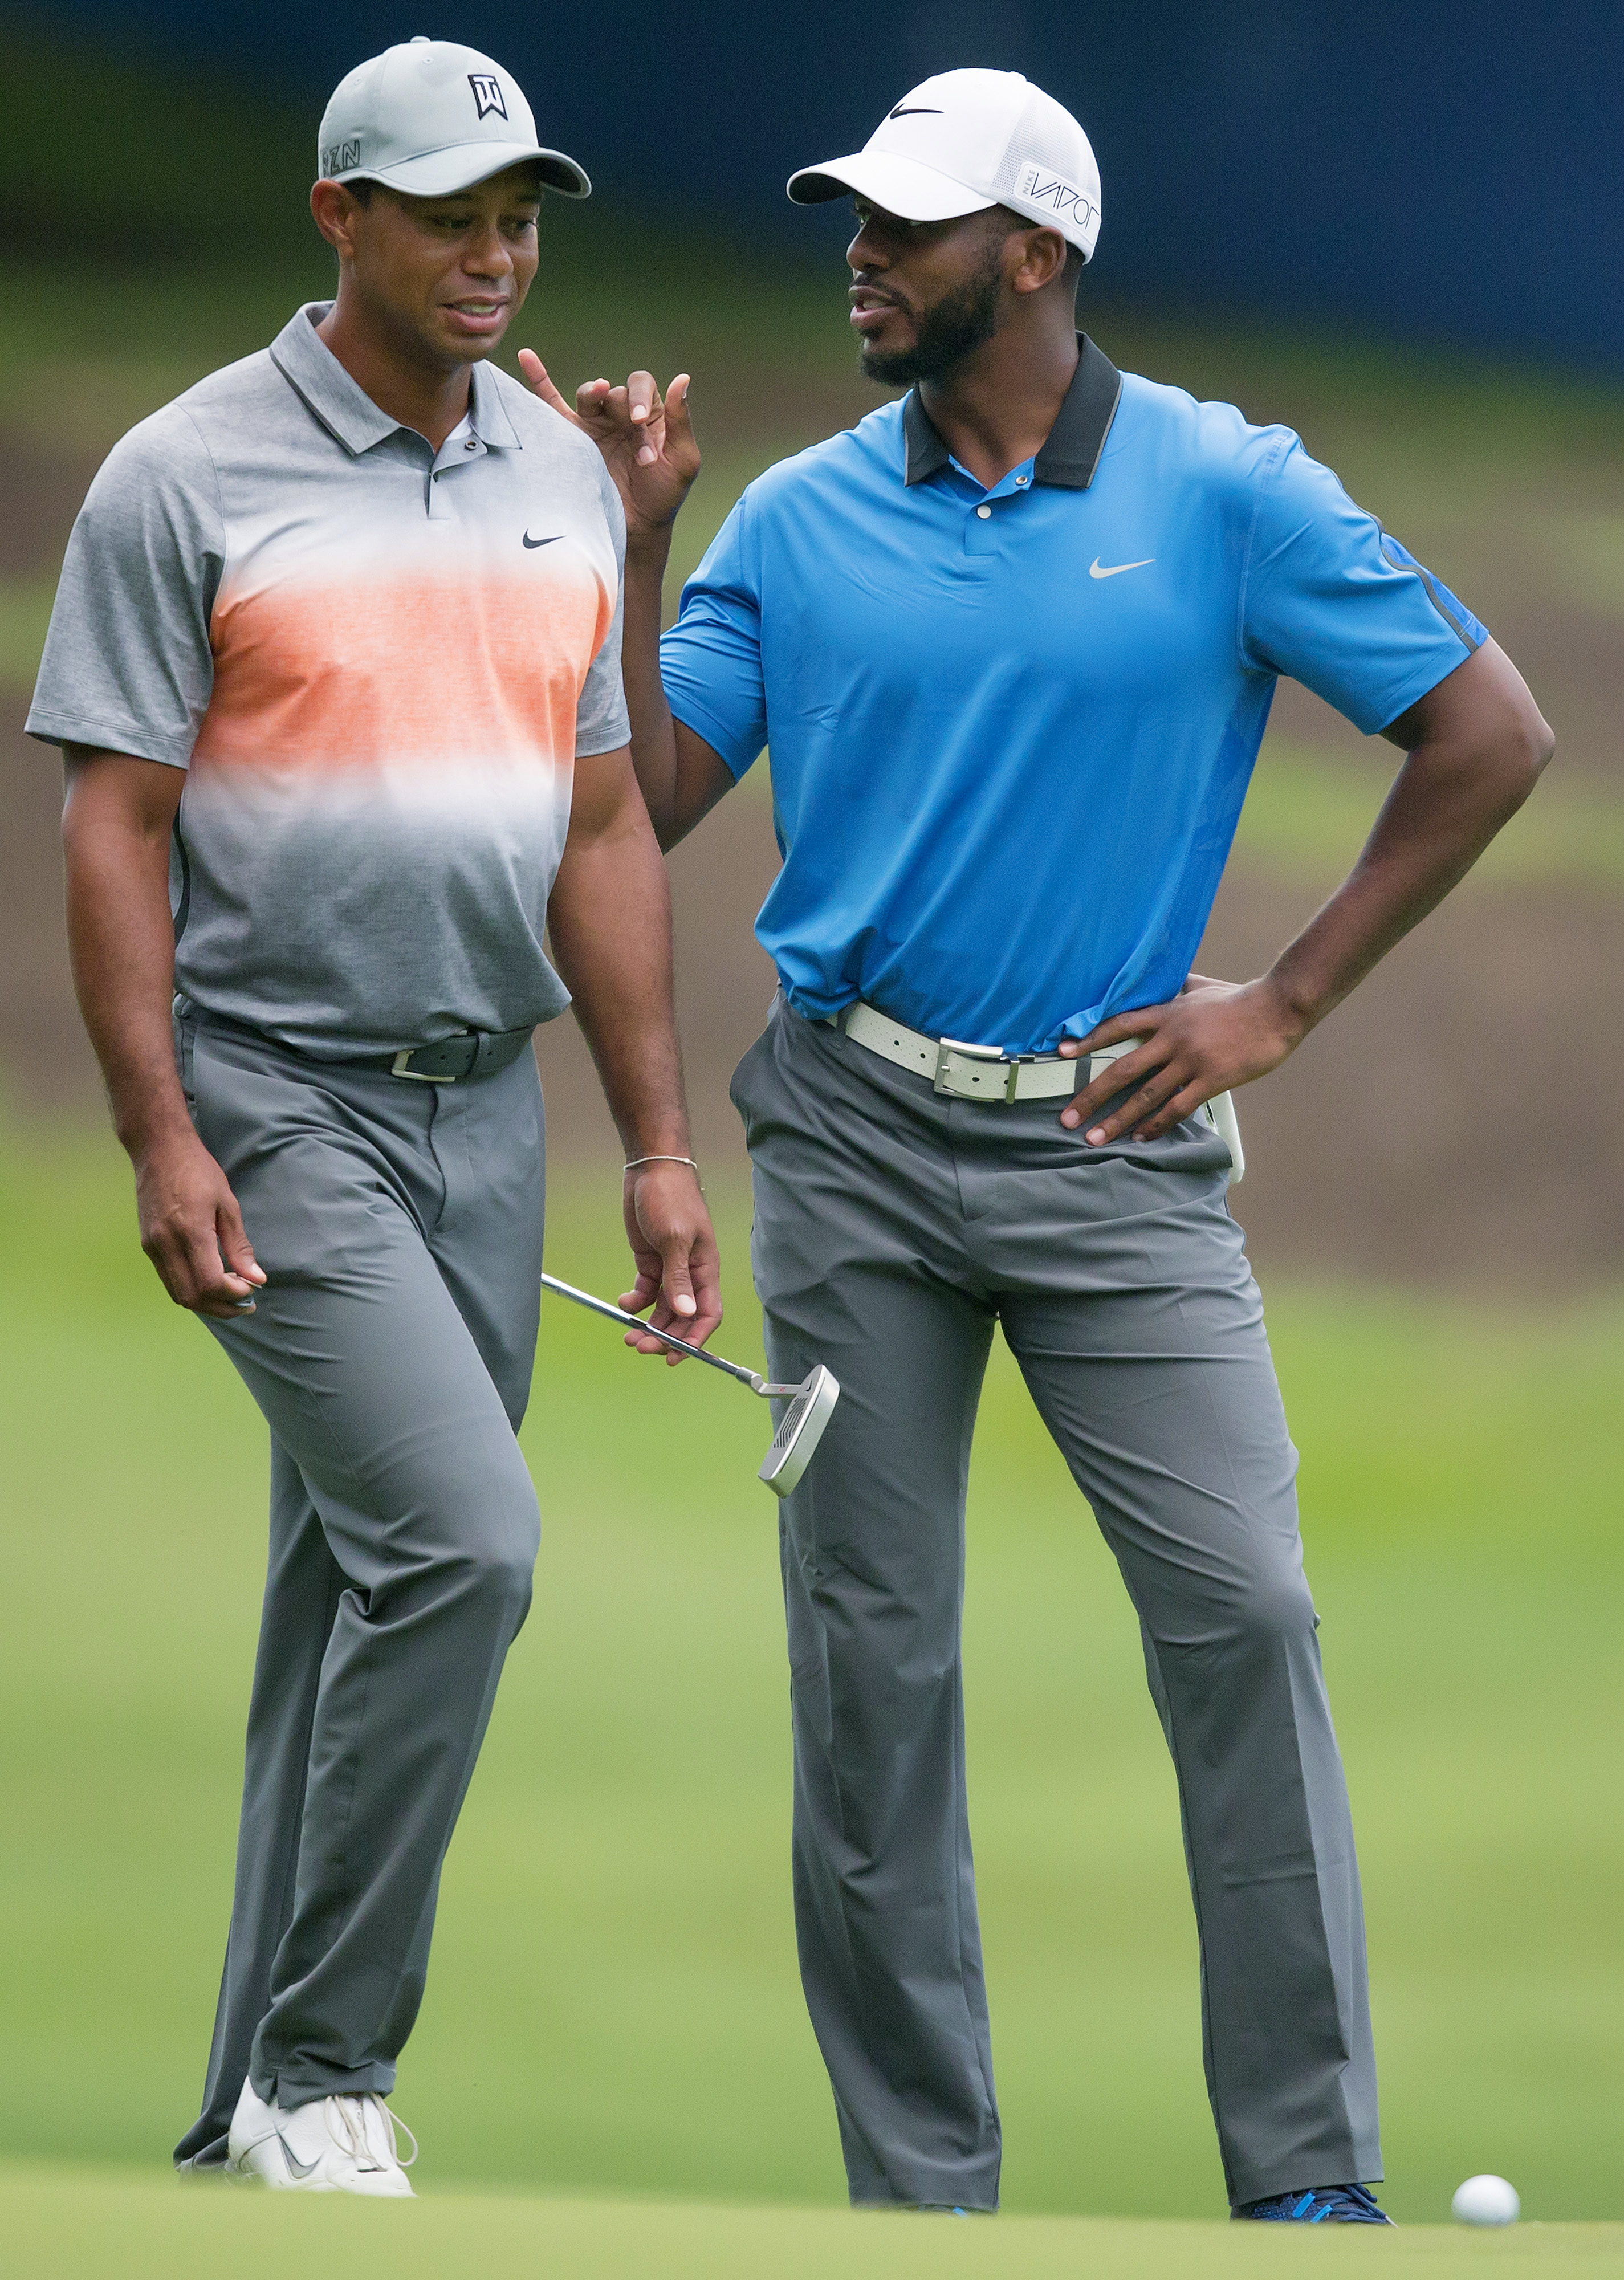 Tiger Woods chats with Los Angeles Clippers basketball player Chris Paul during the pro-am at the Wyndham Championship on Wednesday, Aug. 19, 2015, at Sedgefield Country Club in Greensboro, N.C.